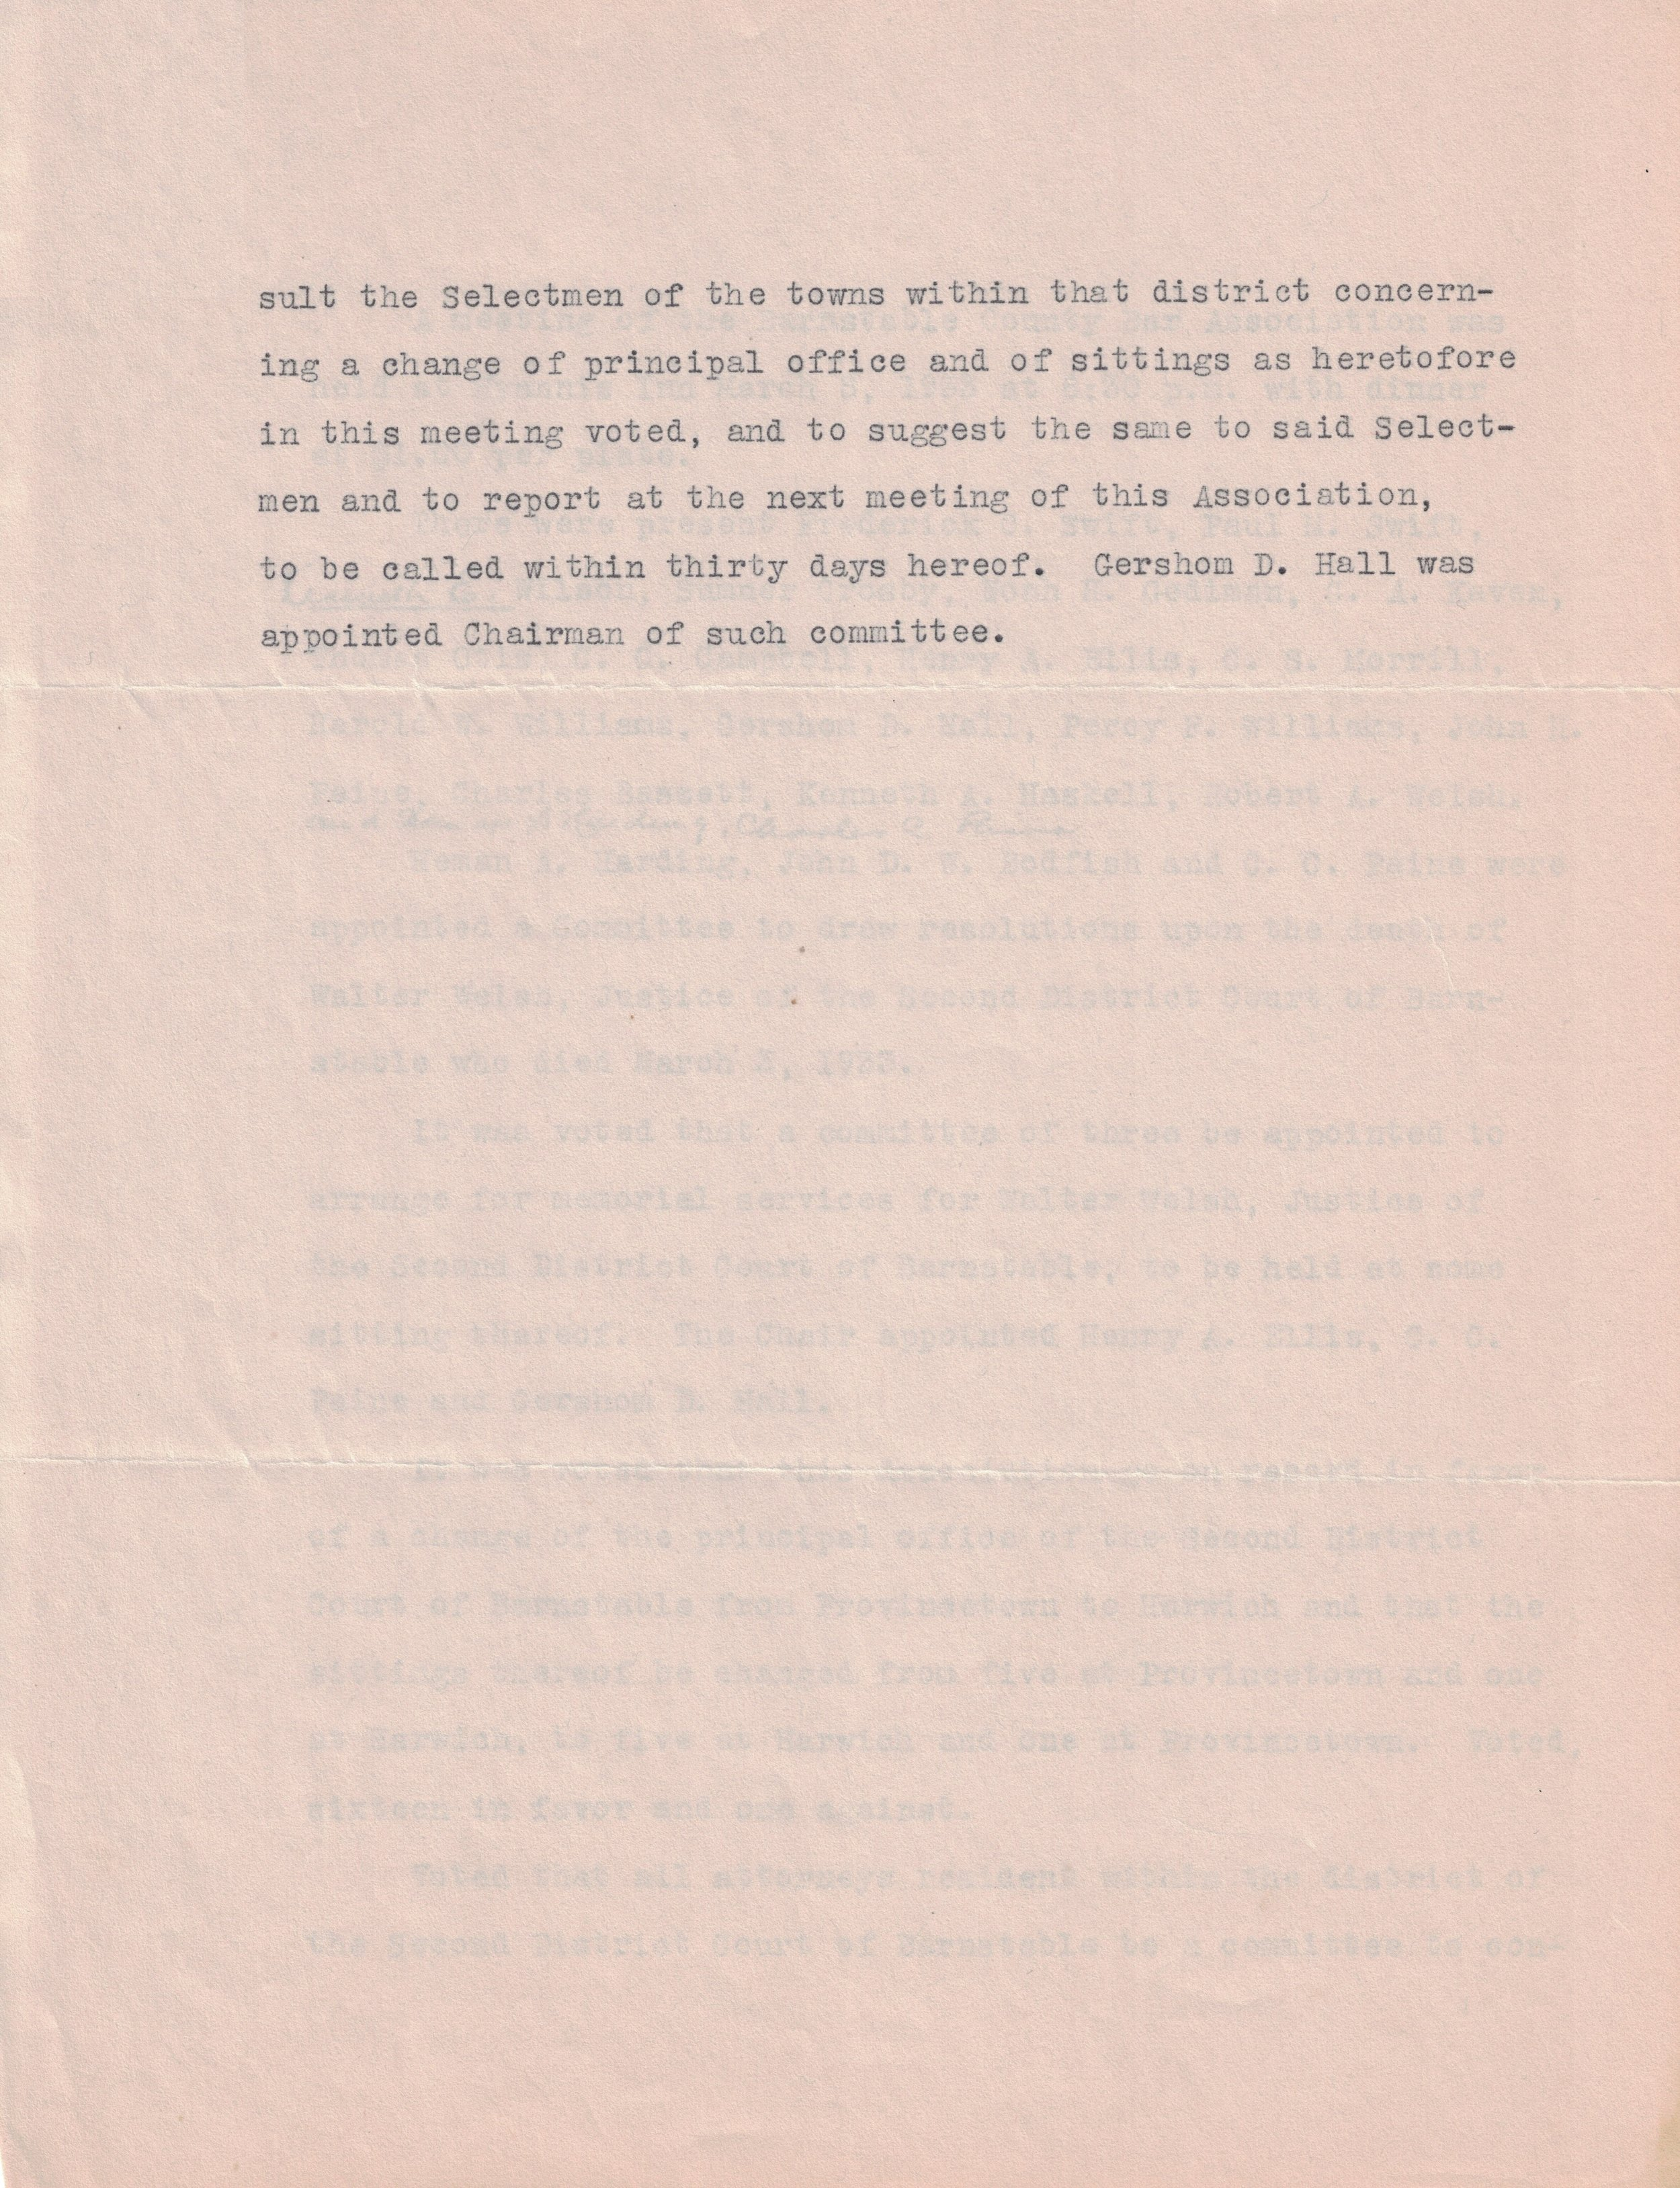 1933 Meeting (Page 2)